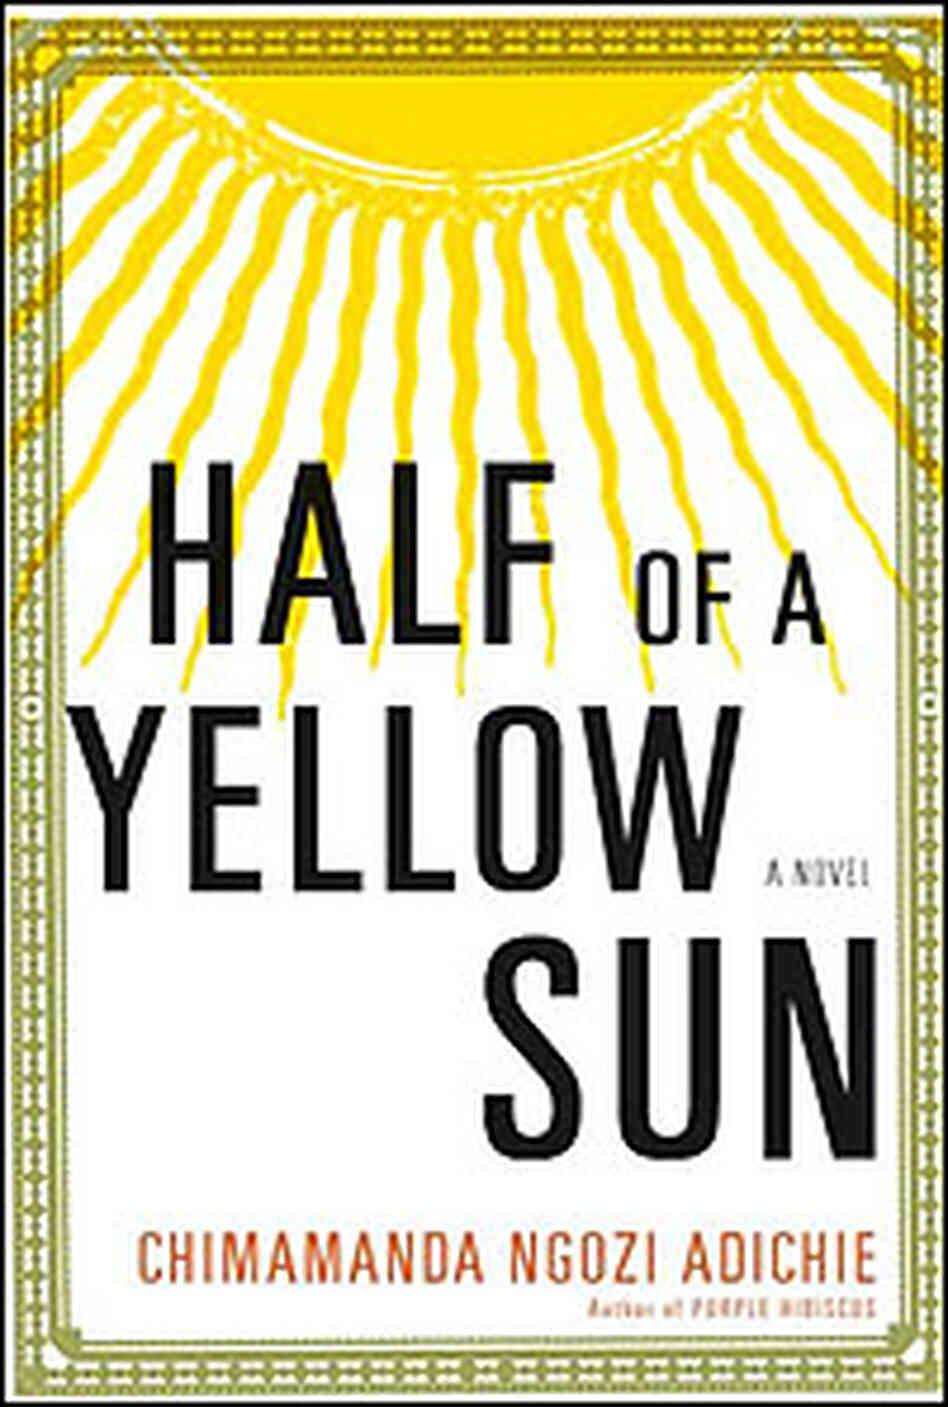 'Half of a Yellow Sun' Cover